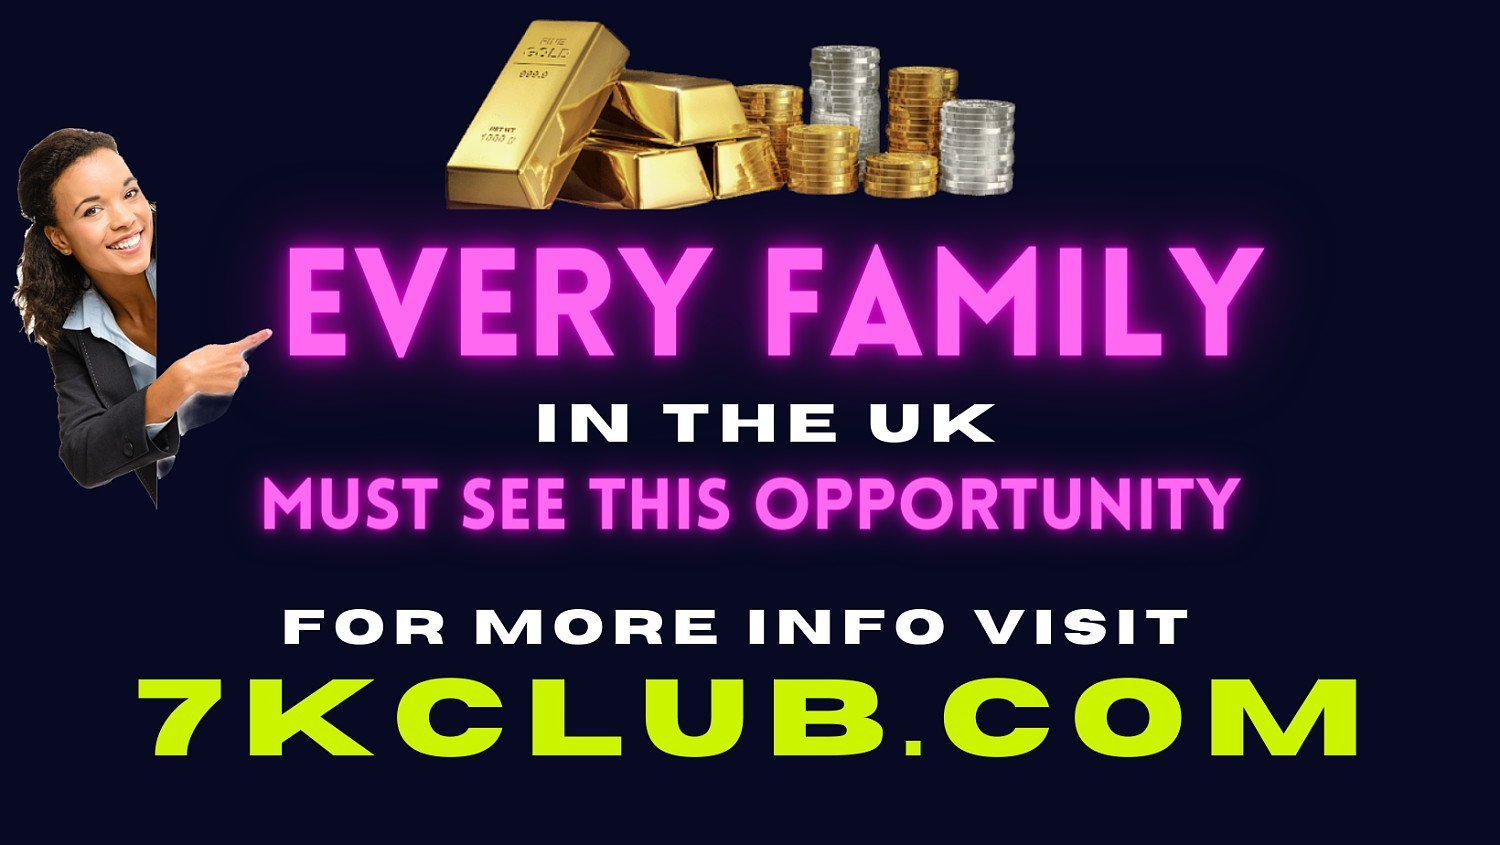 EVERY FAMILY MUST SEE THIS OPPORTUNITY.